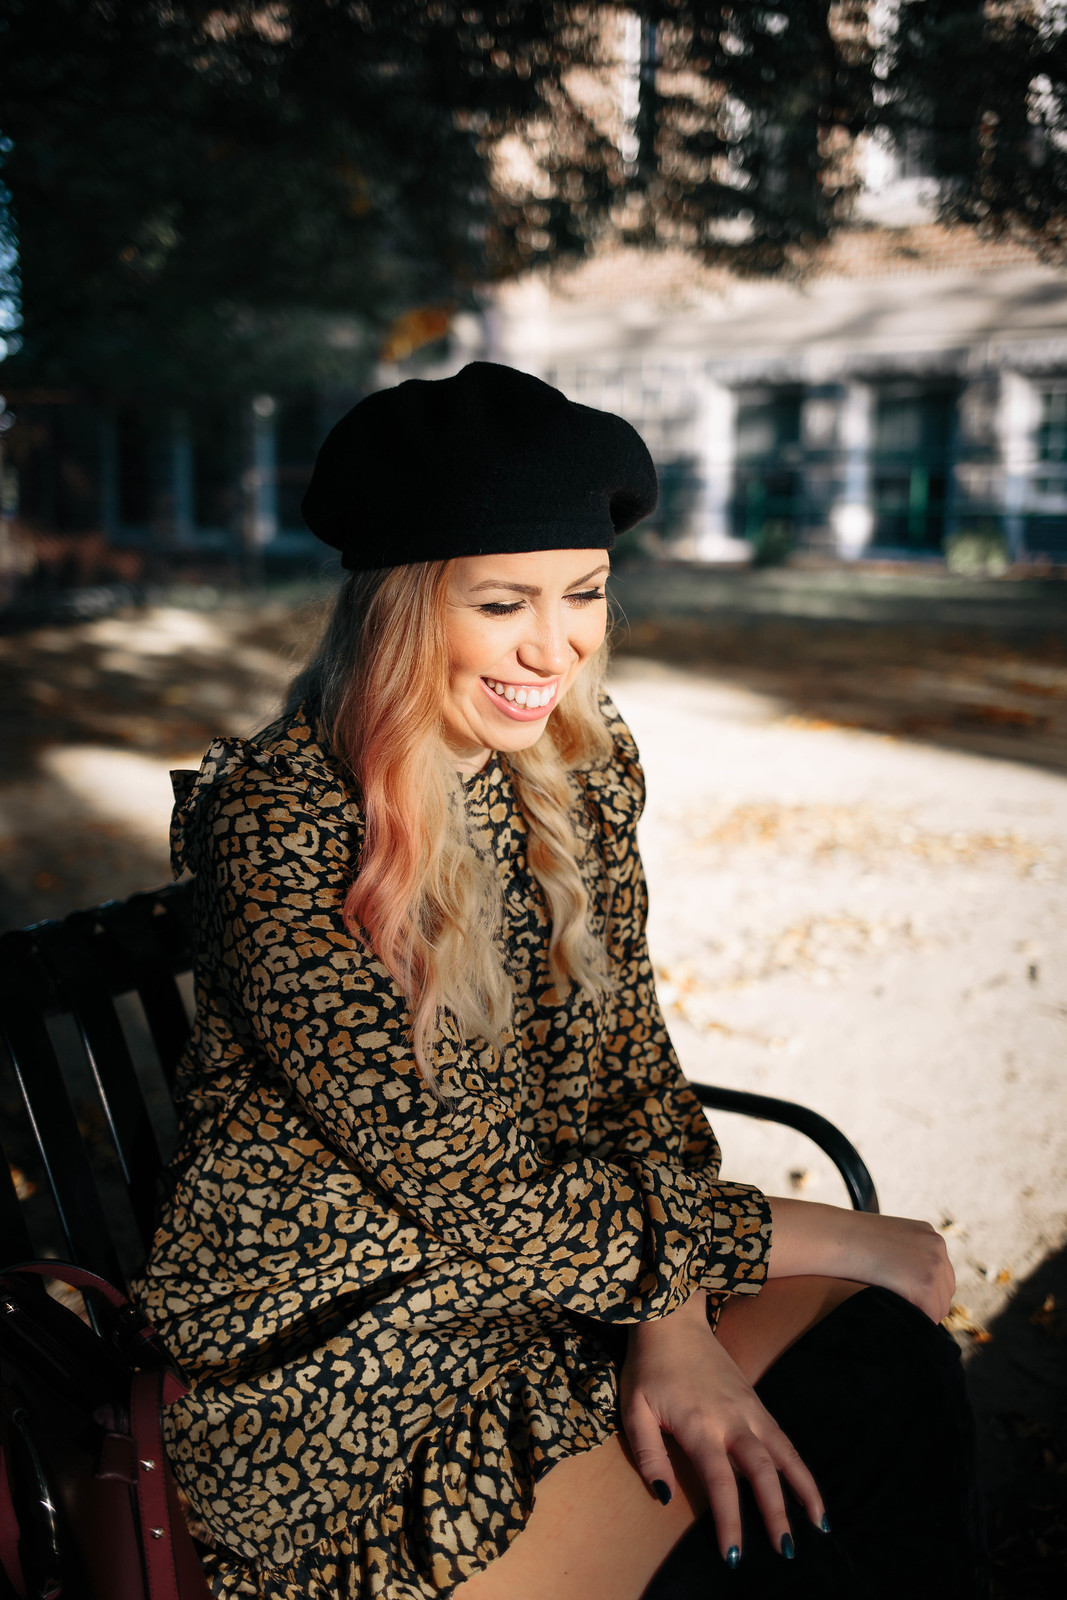 Jackie Giardina Laughing Blogger Fun Photoshoot Black Beret